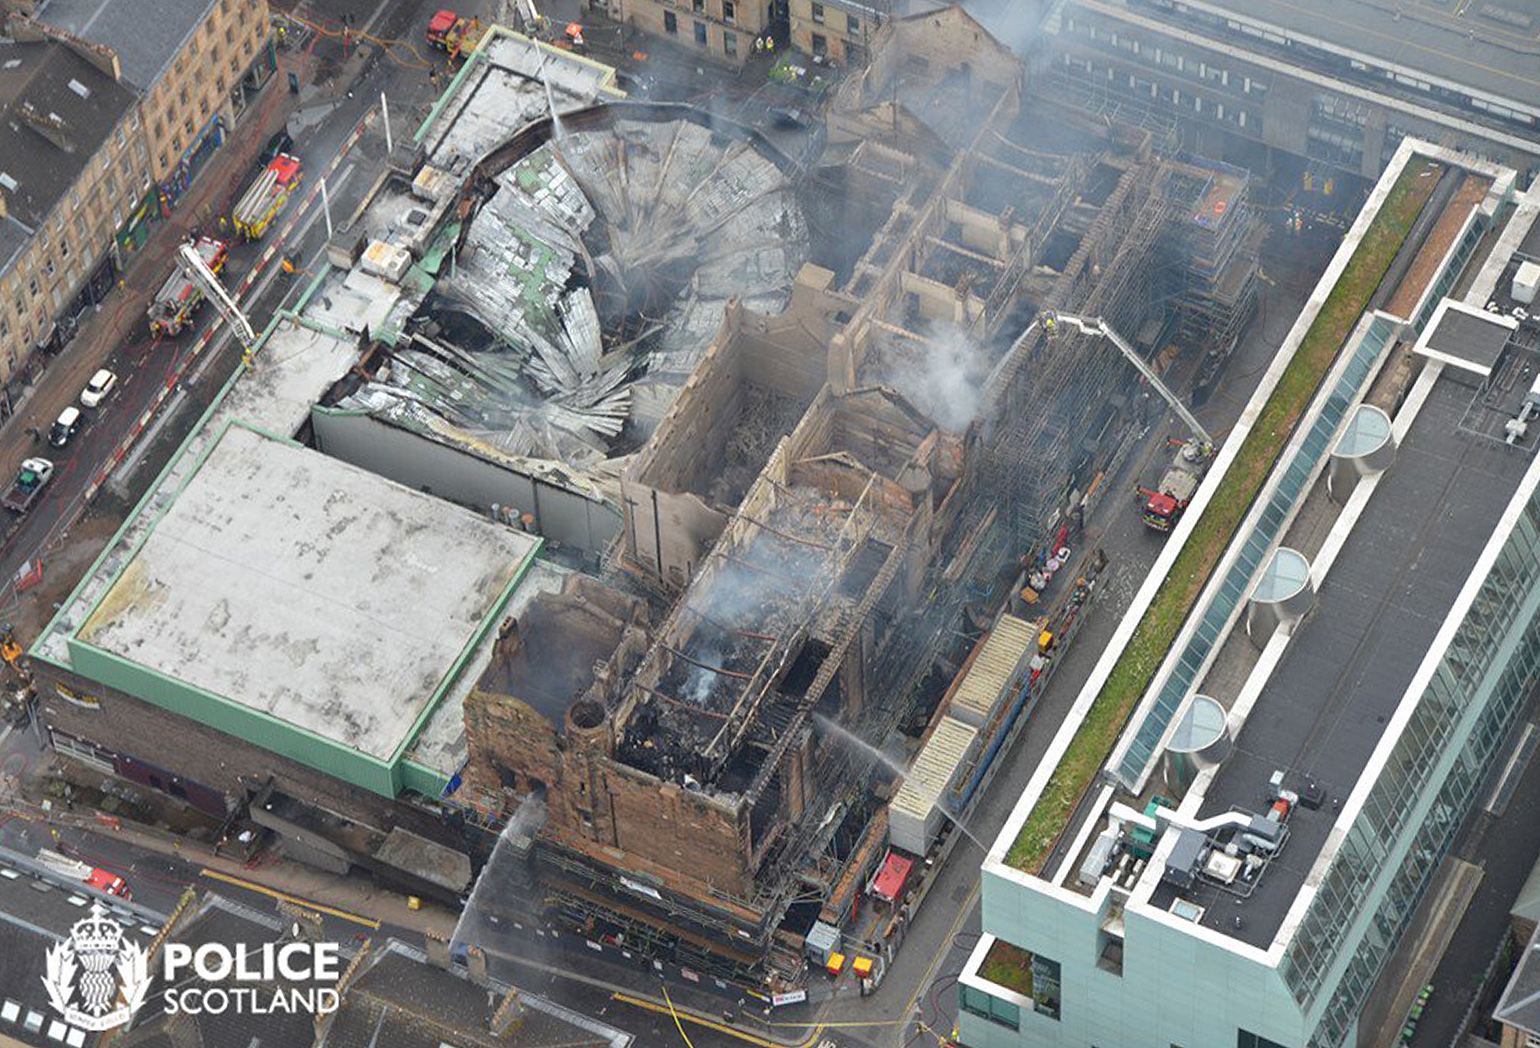 Aerial view of Glasgow School of Art and surrounding buildings after the fire on 15/16 June 2018